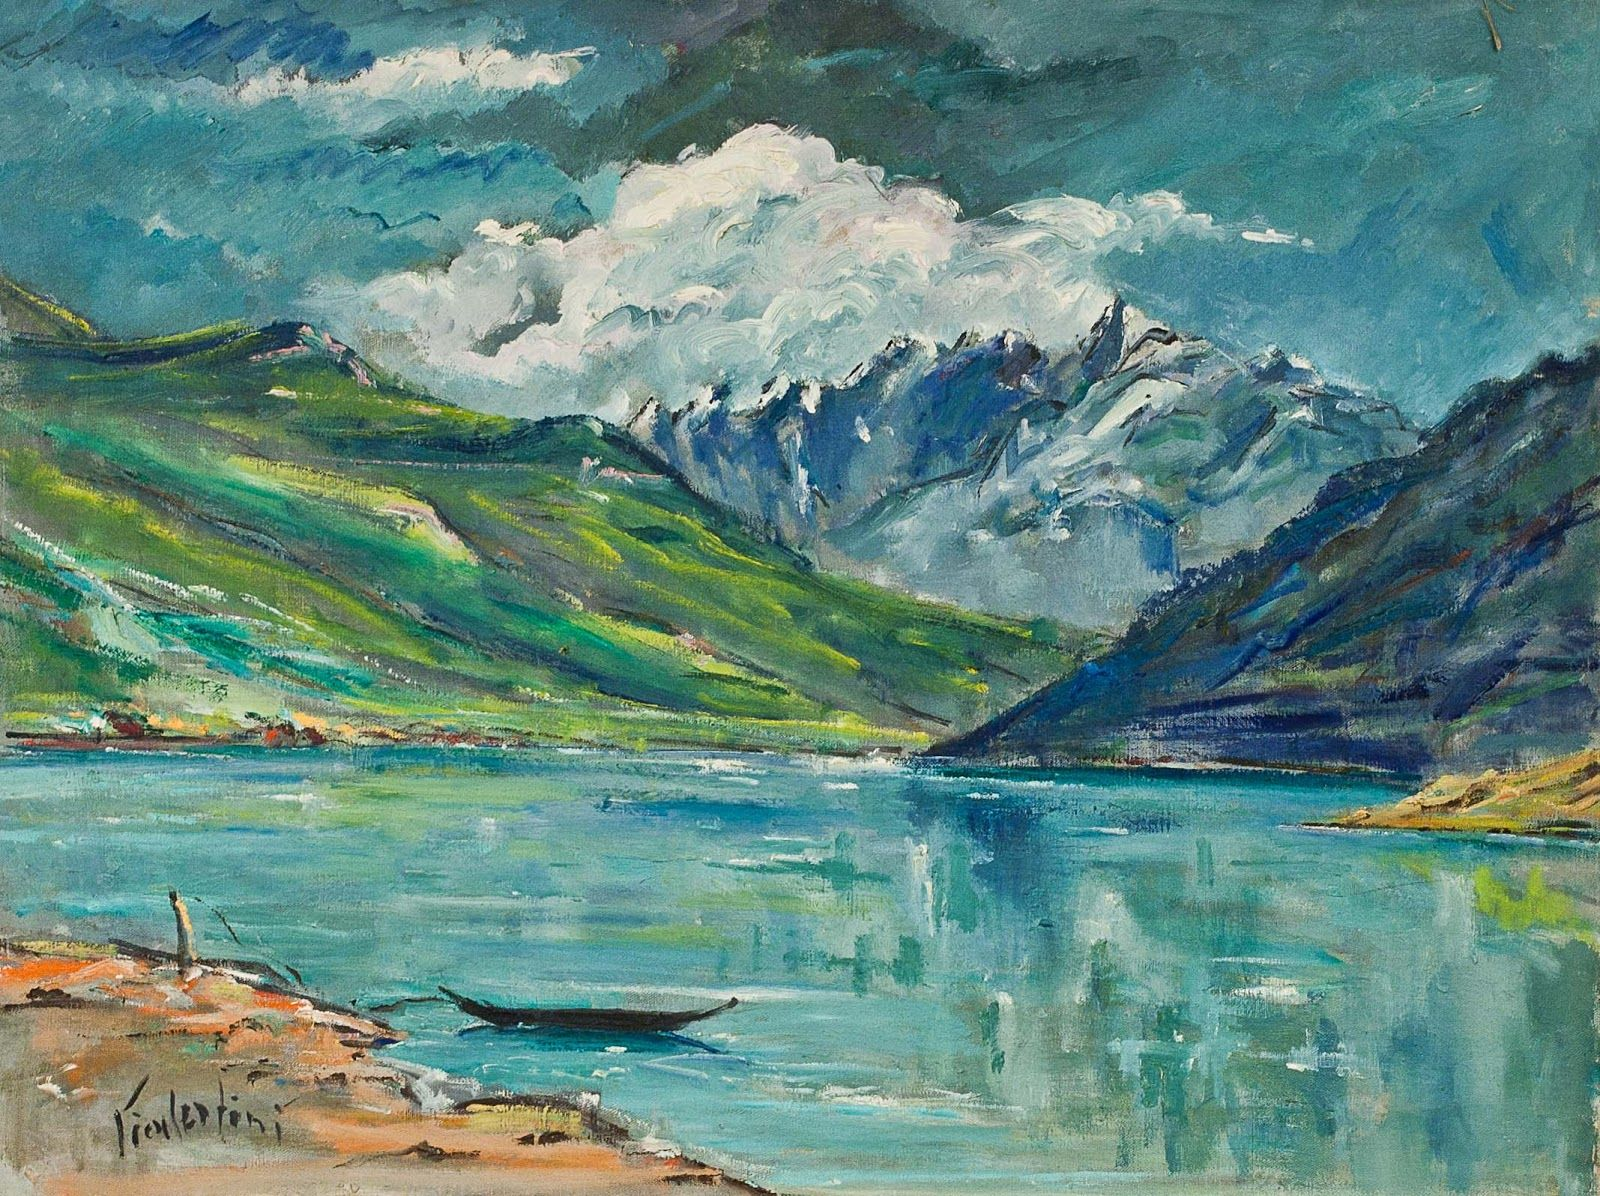 Art Culture 10 Most Famous Artists Specialize In Nature Paintings Museum Quality Oil Painting Reproductions For